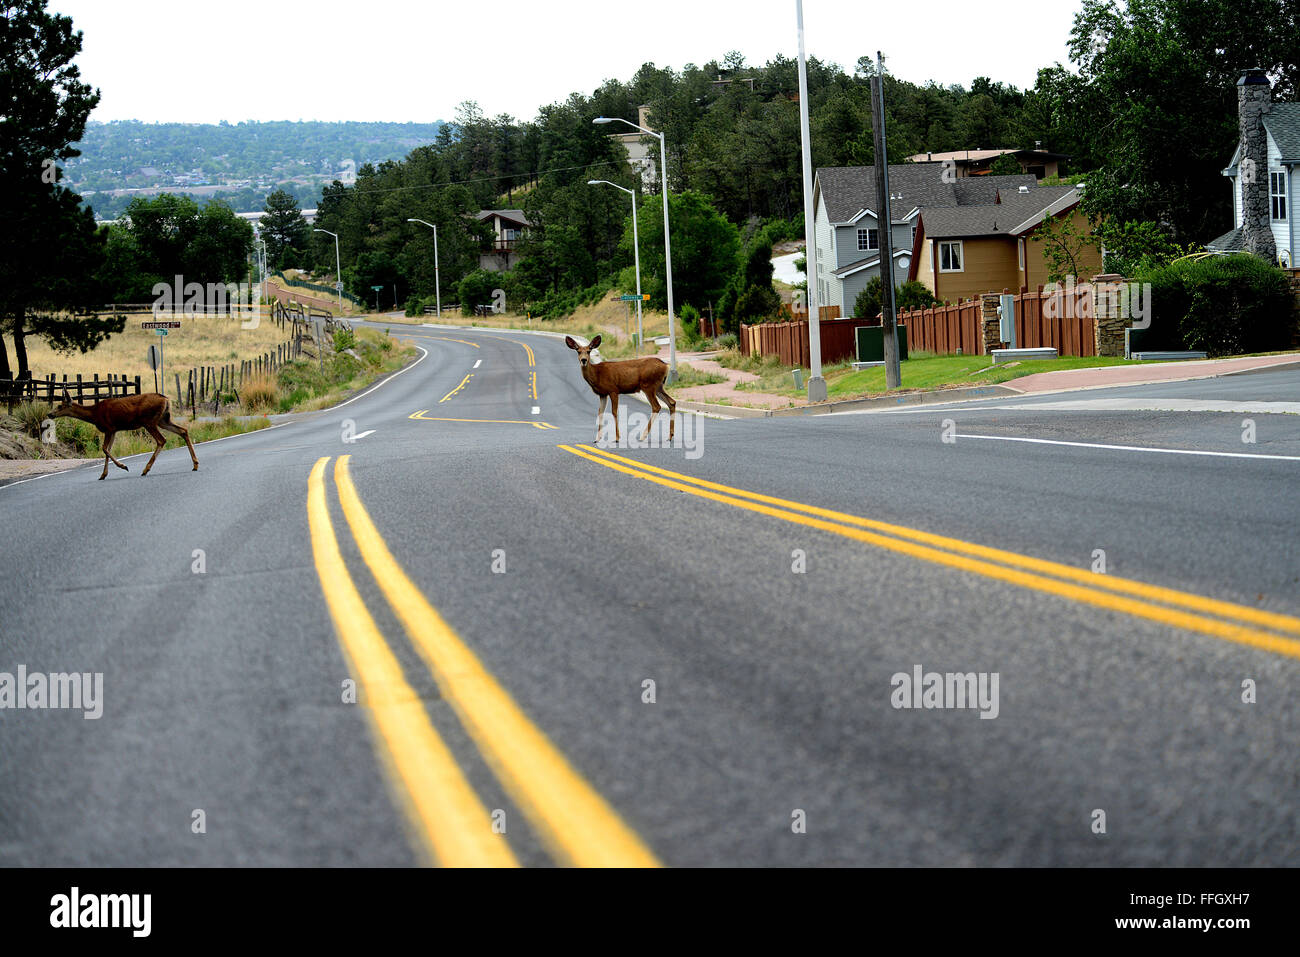 A couple of deer cross the road of an evacuated neighborhood in the Mount St. Francis area of Colorado Springs, Stock Photo